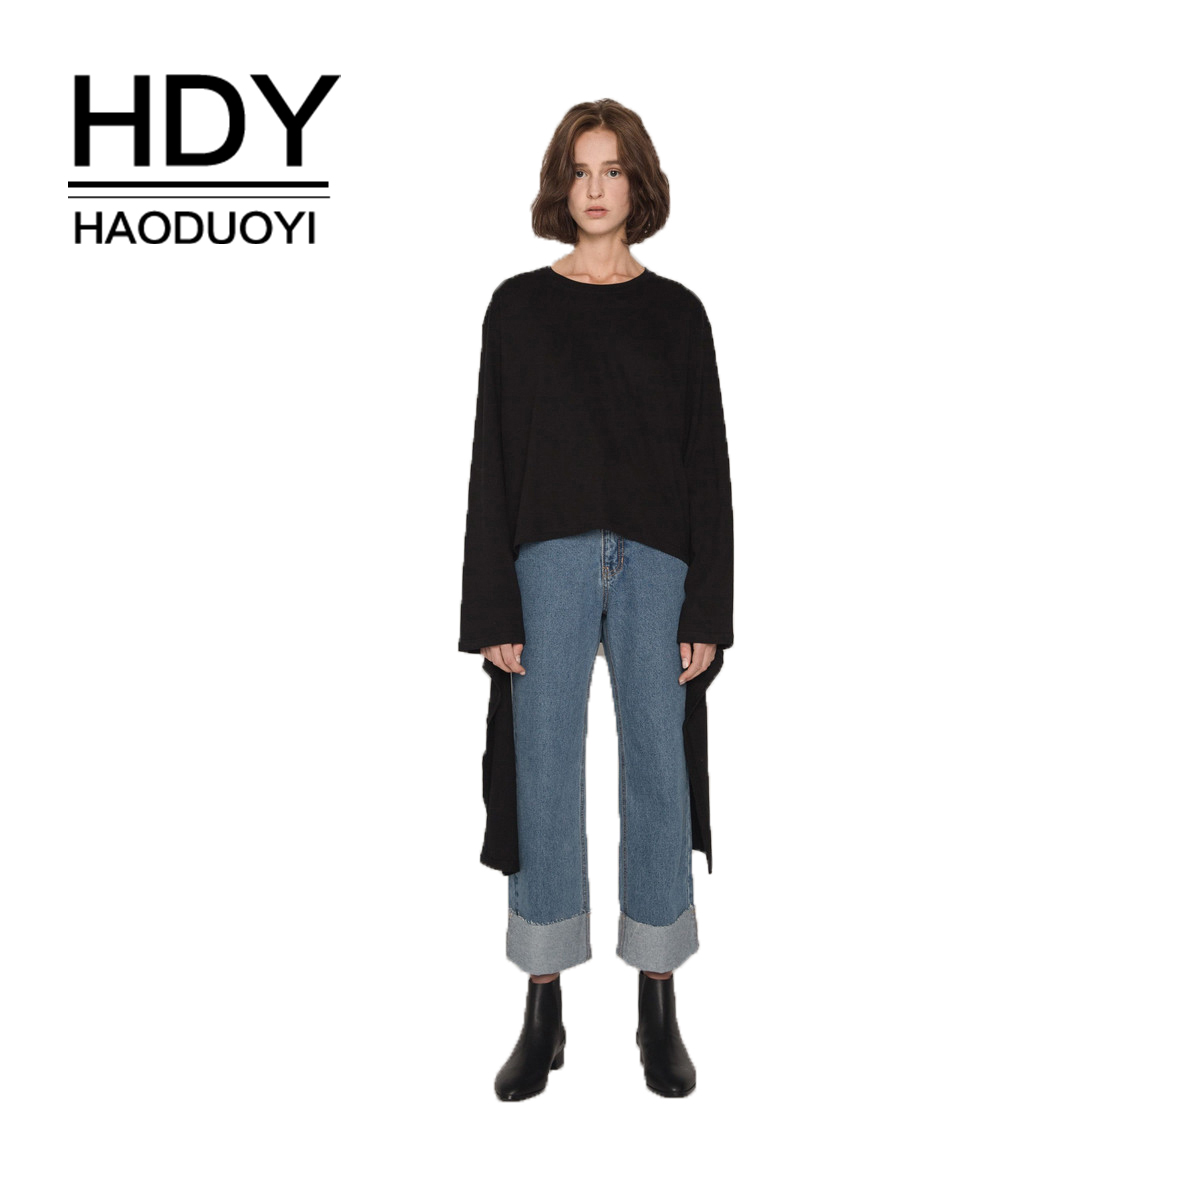 HDY Haoduoyi Street College Wind Loose Cuff Personality Ribbon Top Casual Black New Arrival Autumn